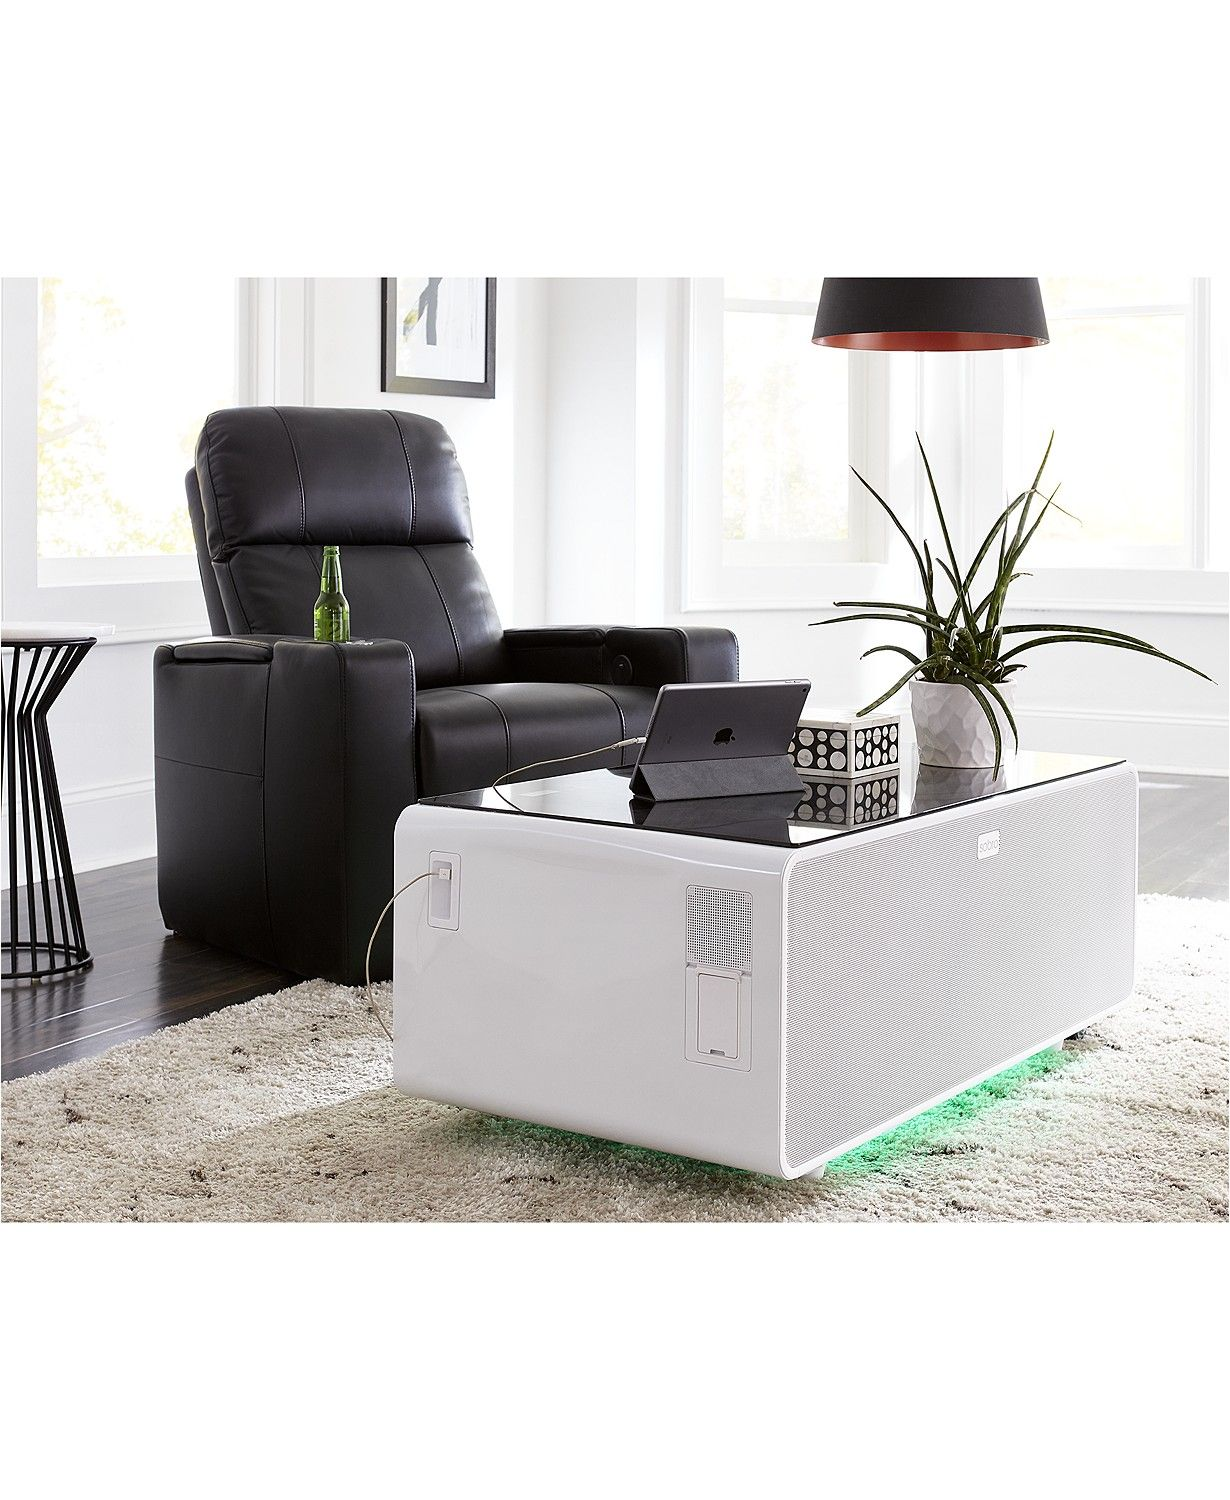 Sobro Smart Storage Coffee Table With Refrigerated Drawer Reviews Furniture Macy S In 2021 Coffee Table With Storage Smart Storage Stylish Coffee Table [ 1500 x 1230 Pixel ]